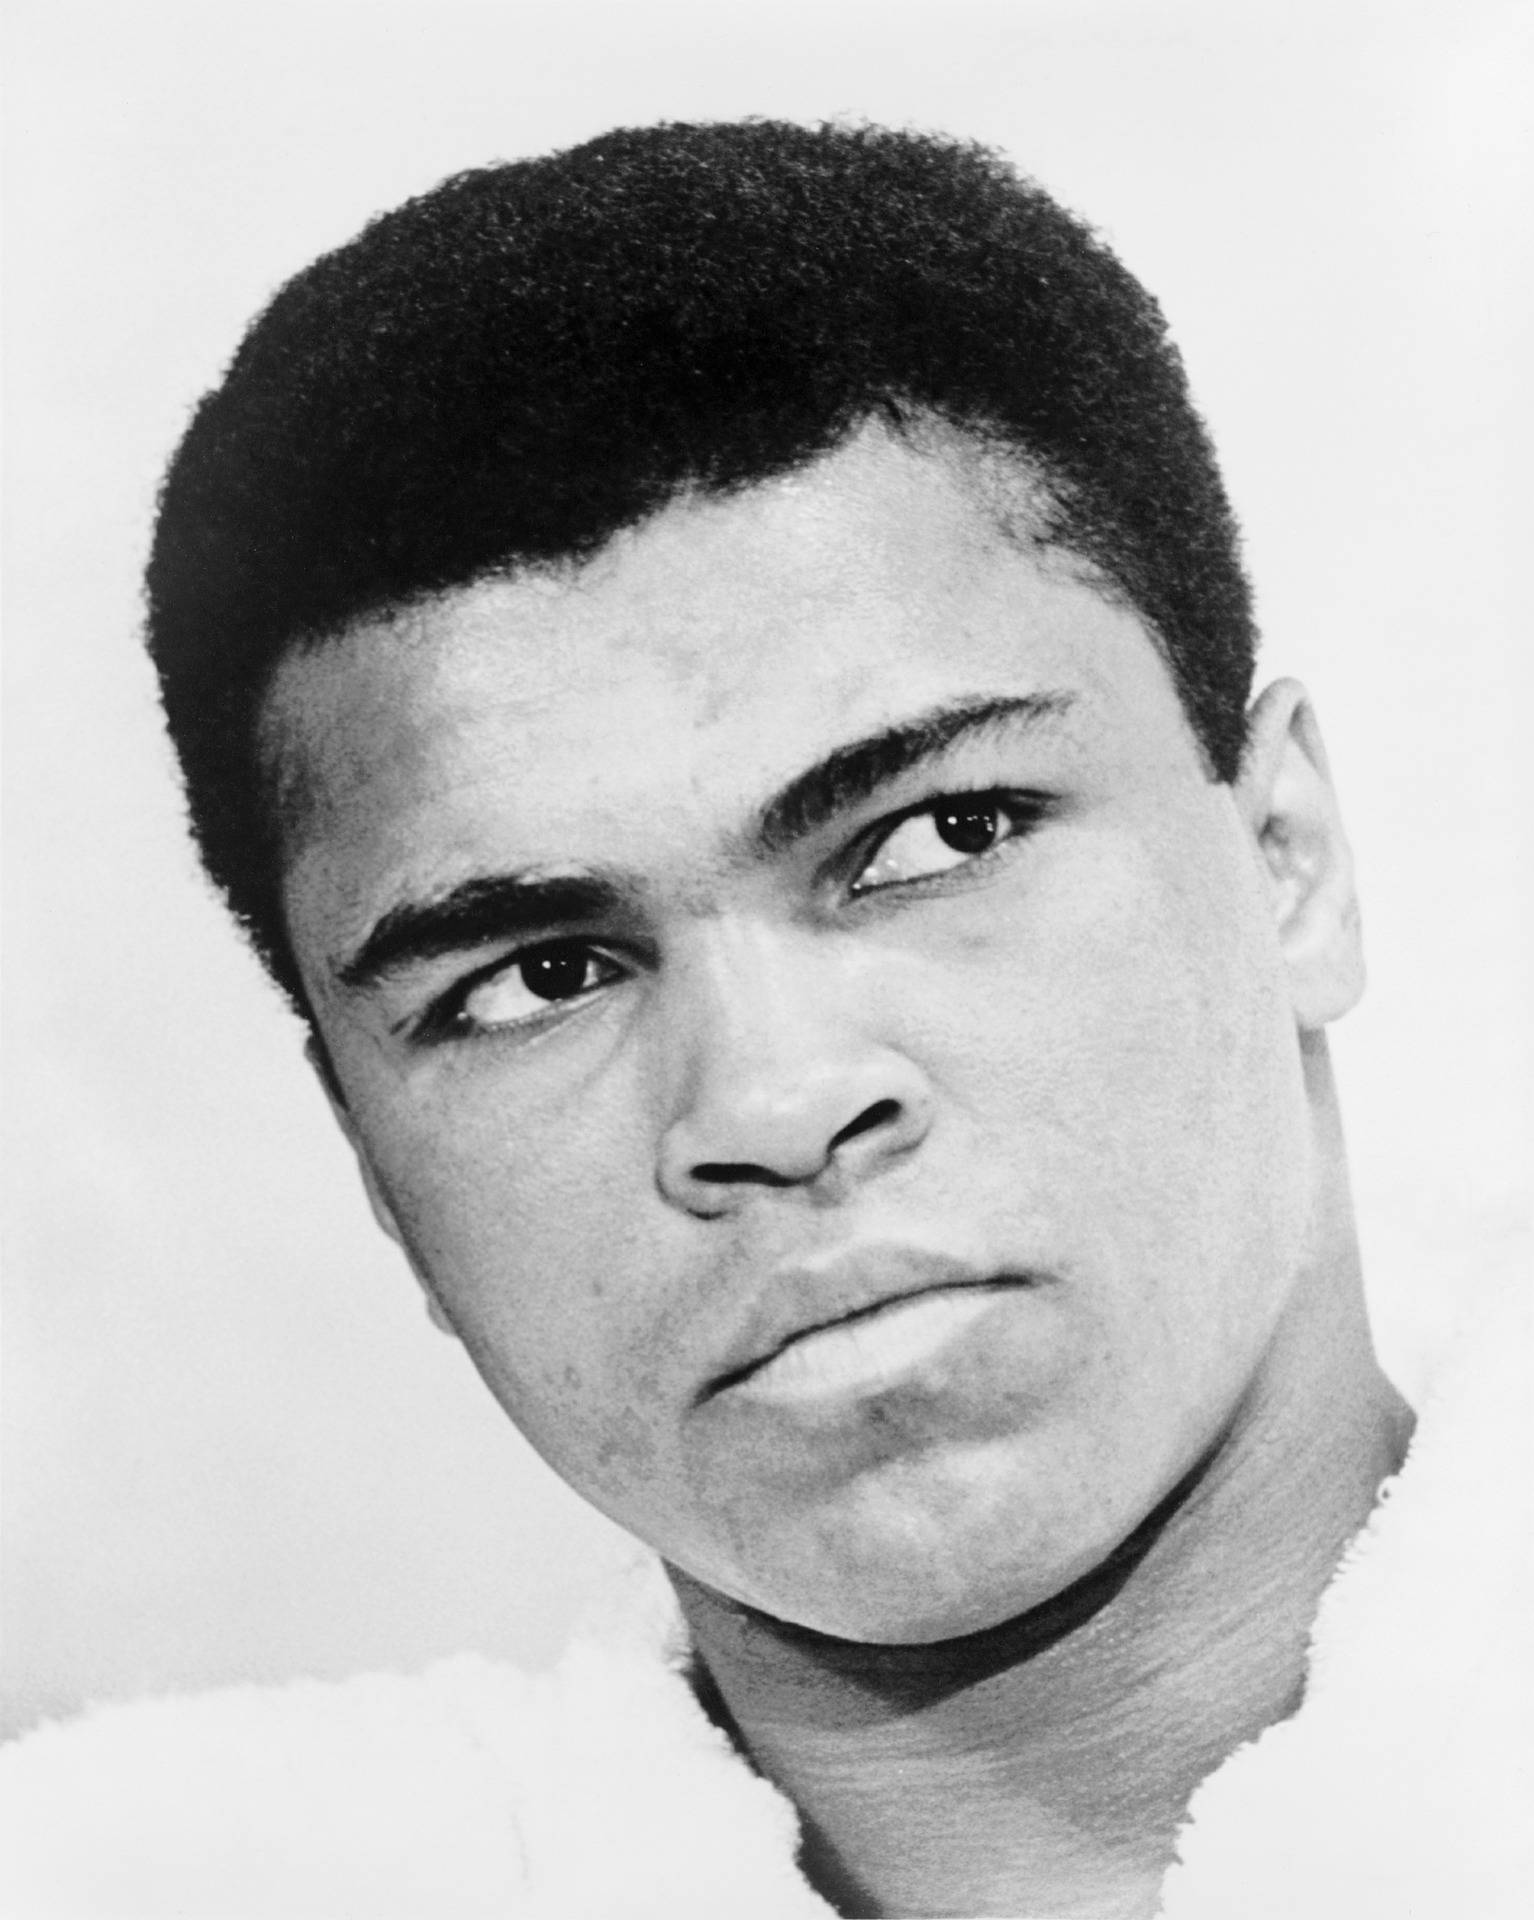 /www.aklander.co.uk/image/catalog/1 muhammad-ali-572571_1920